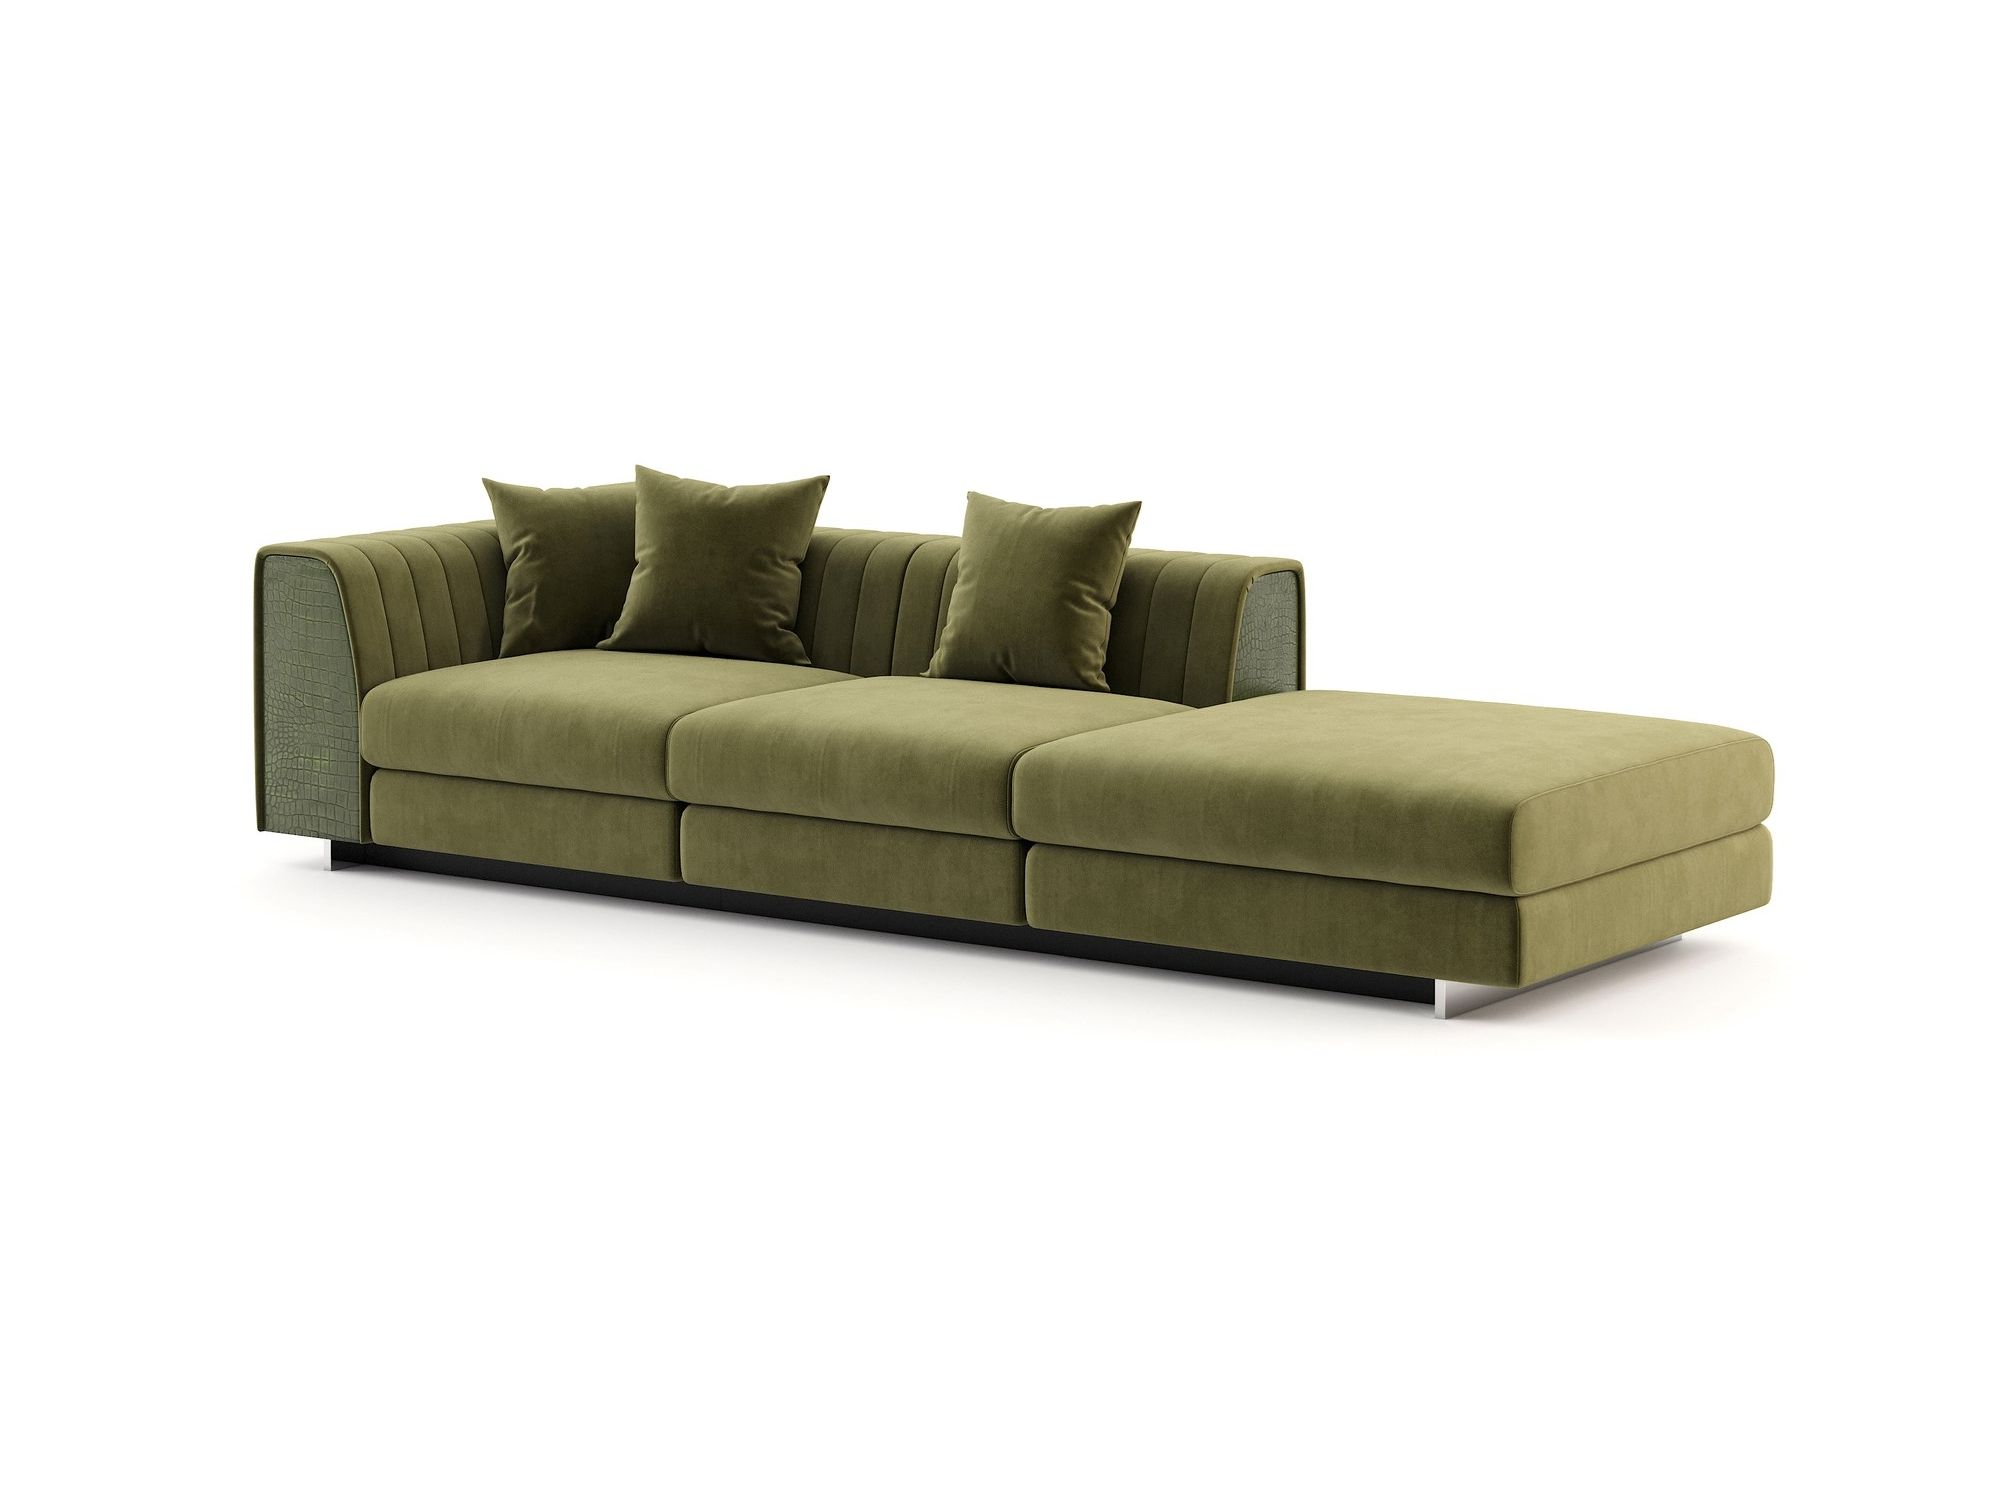 Harry Fabric Sofa Harry Collection By Laskasas In 2020 Sofa Fabric Sofa Types Of Sofas